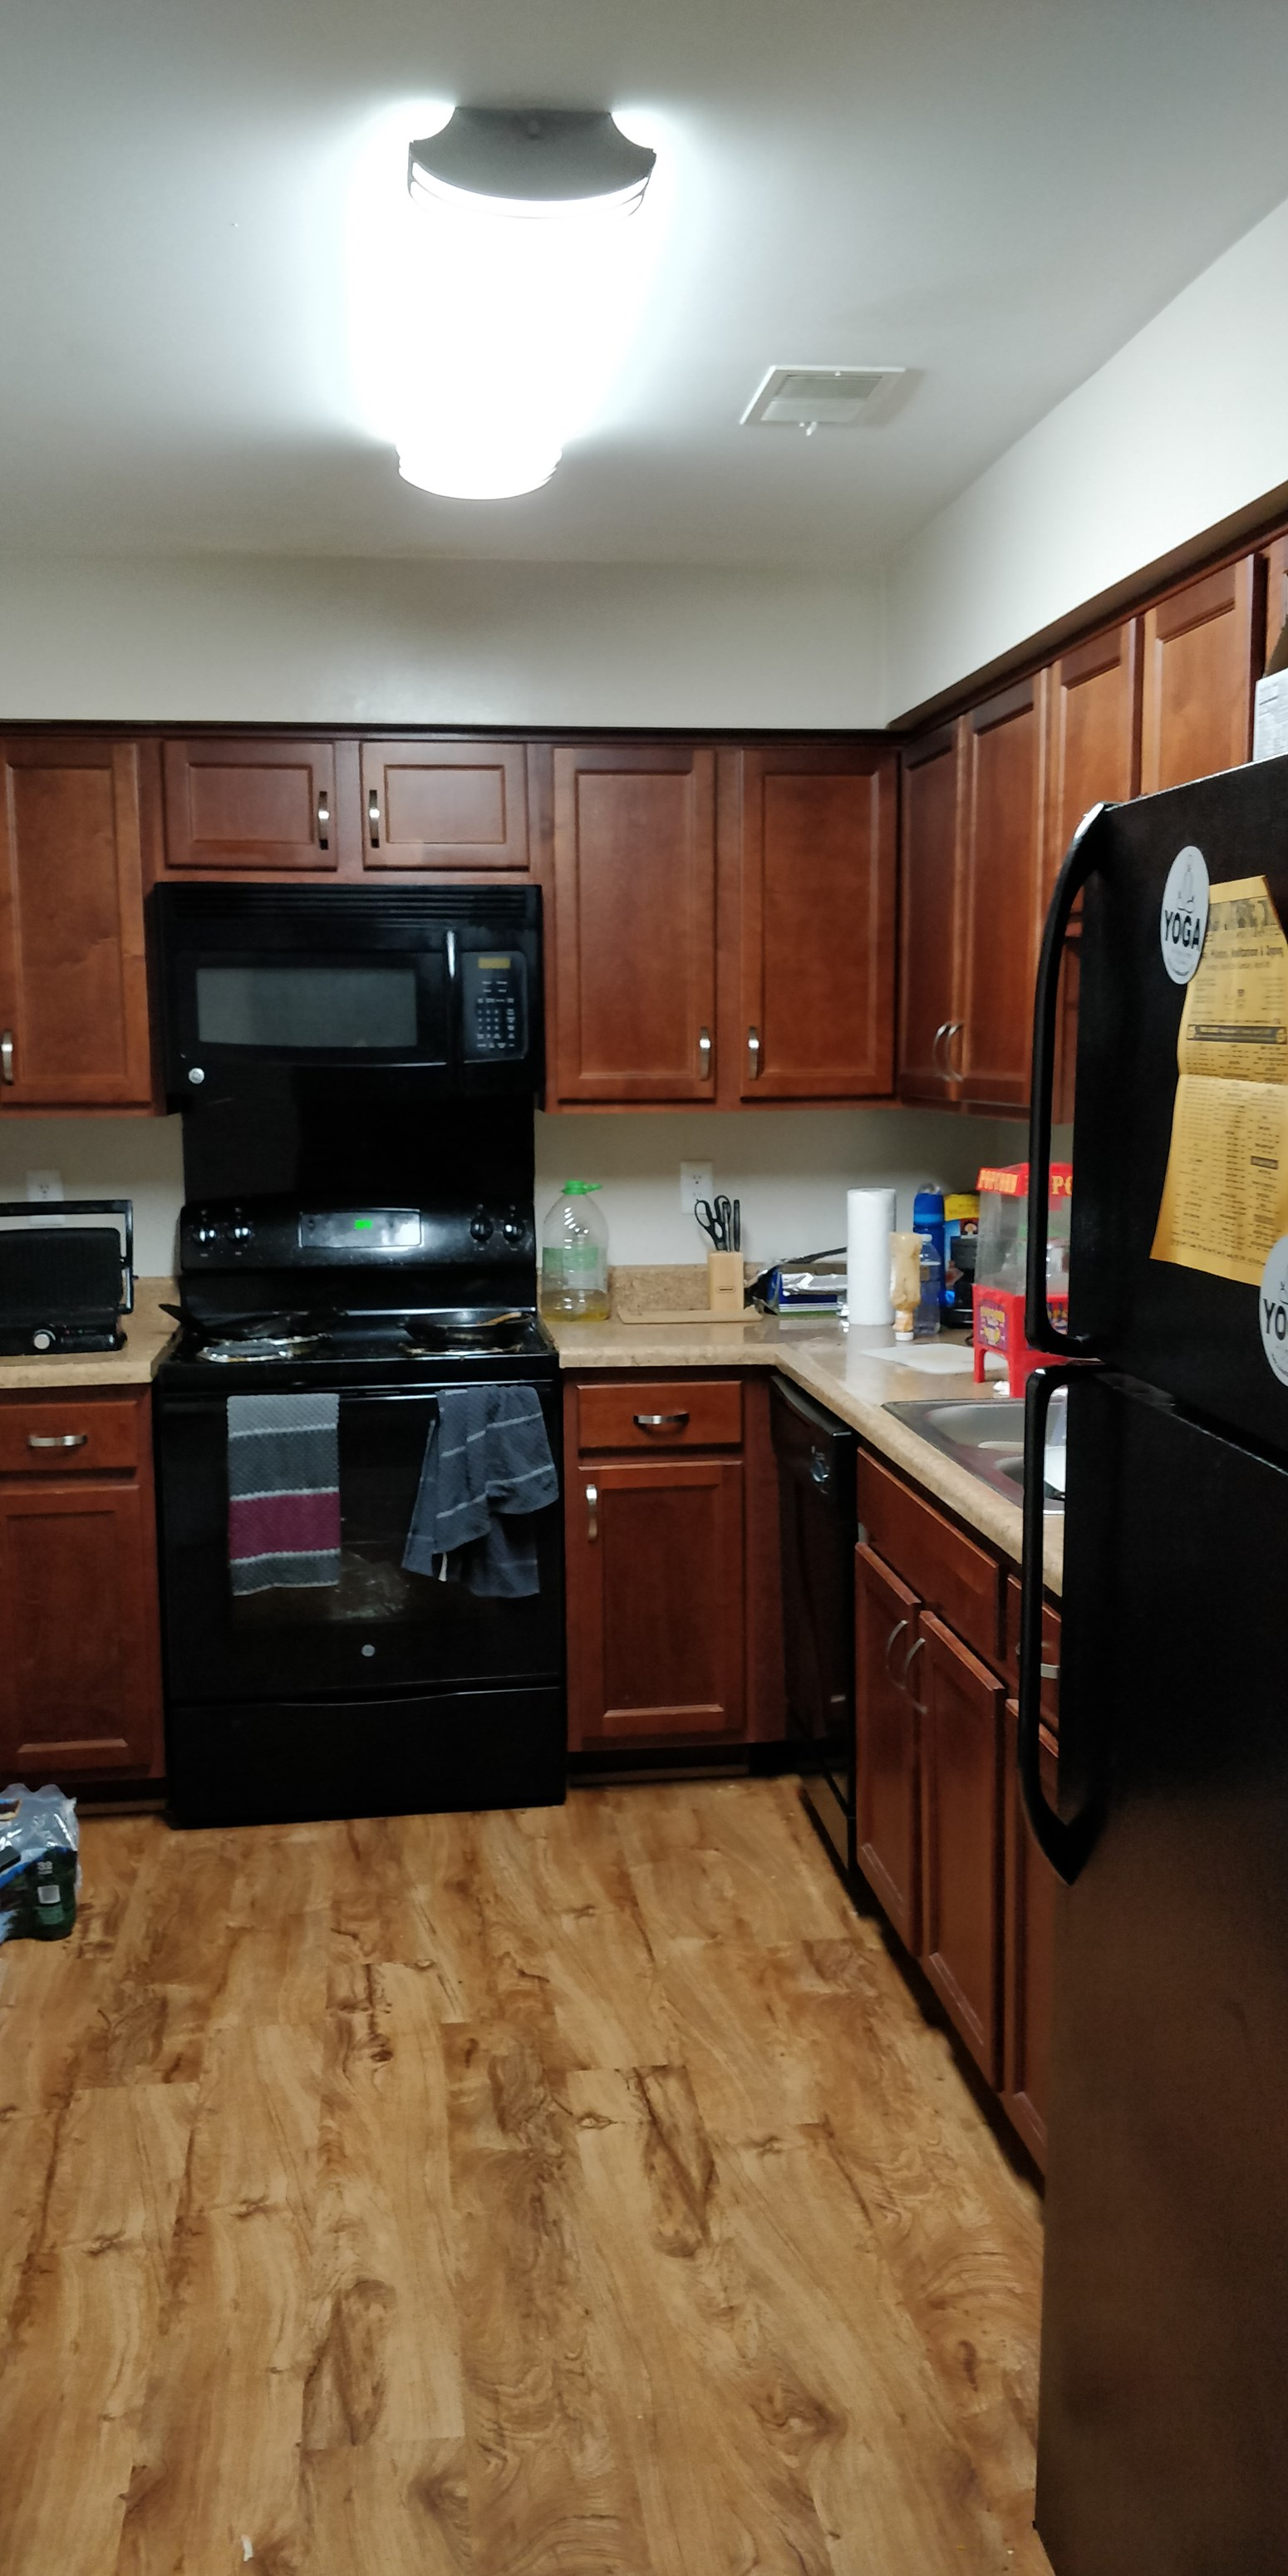 A Single Room For Rent In A 2 Bed And 2 Bath Apartment In Columbia